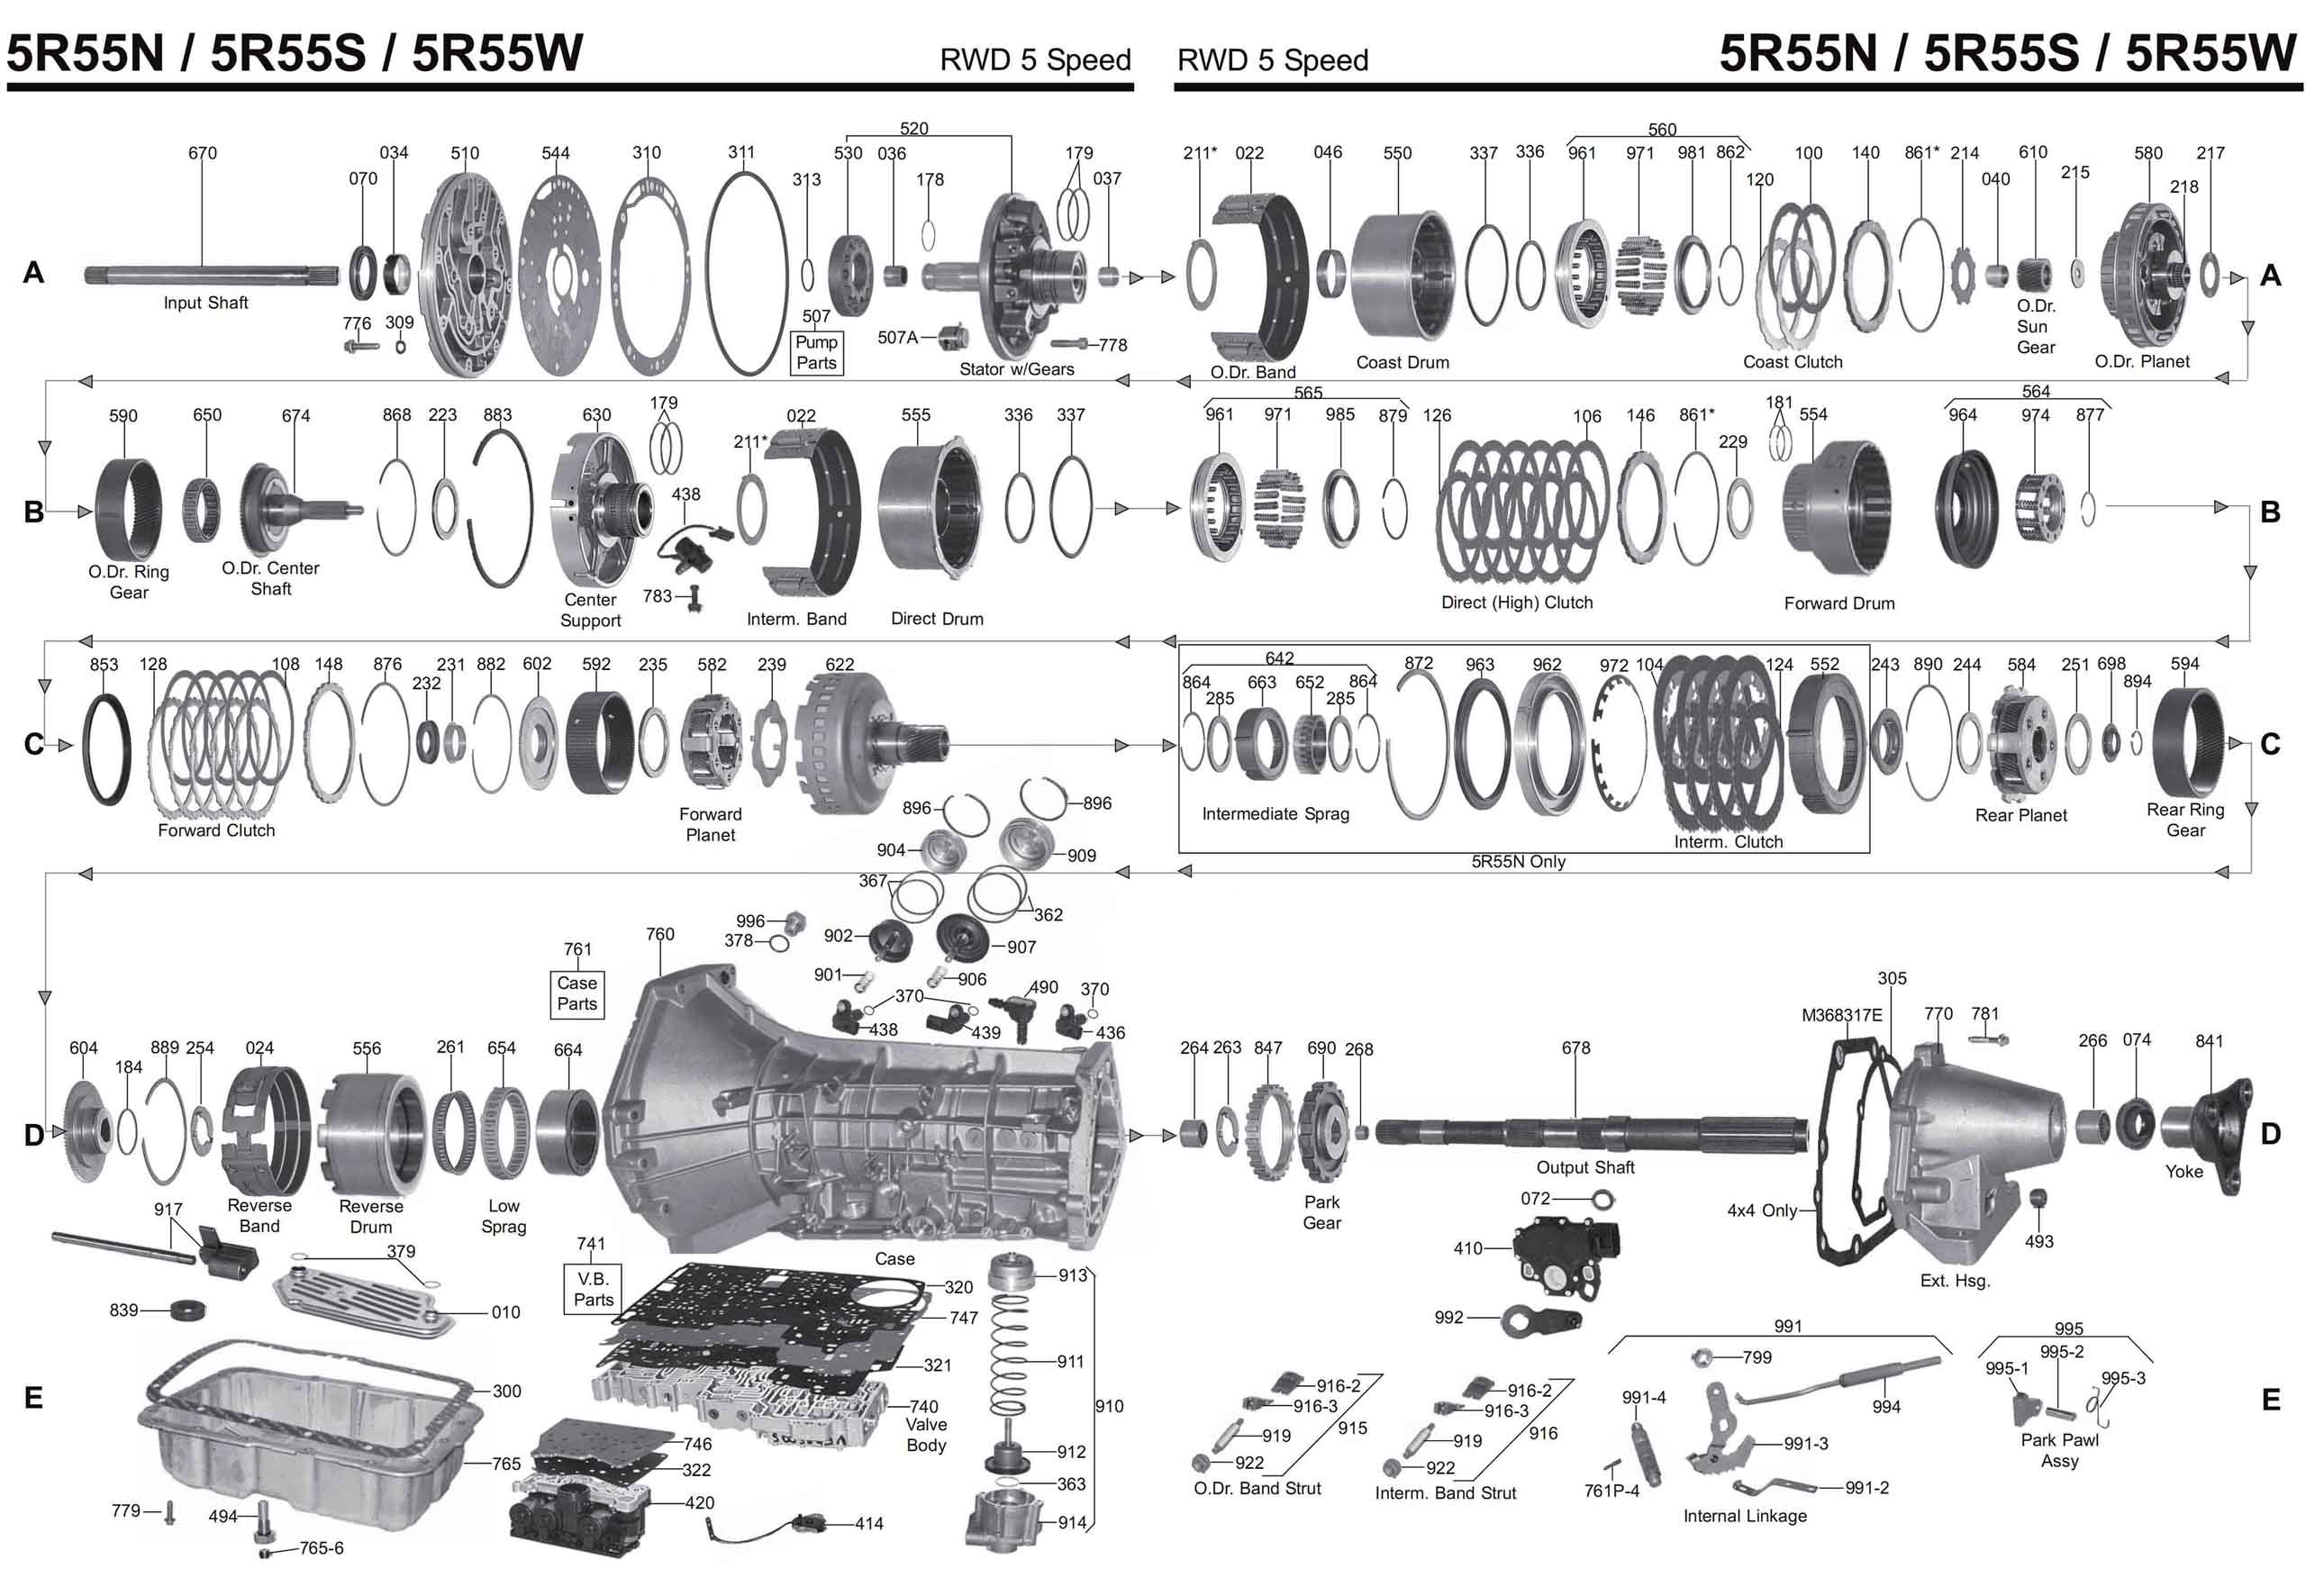 5R55S Transmission parts, repair guidelines, problems, manuals